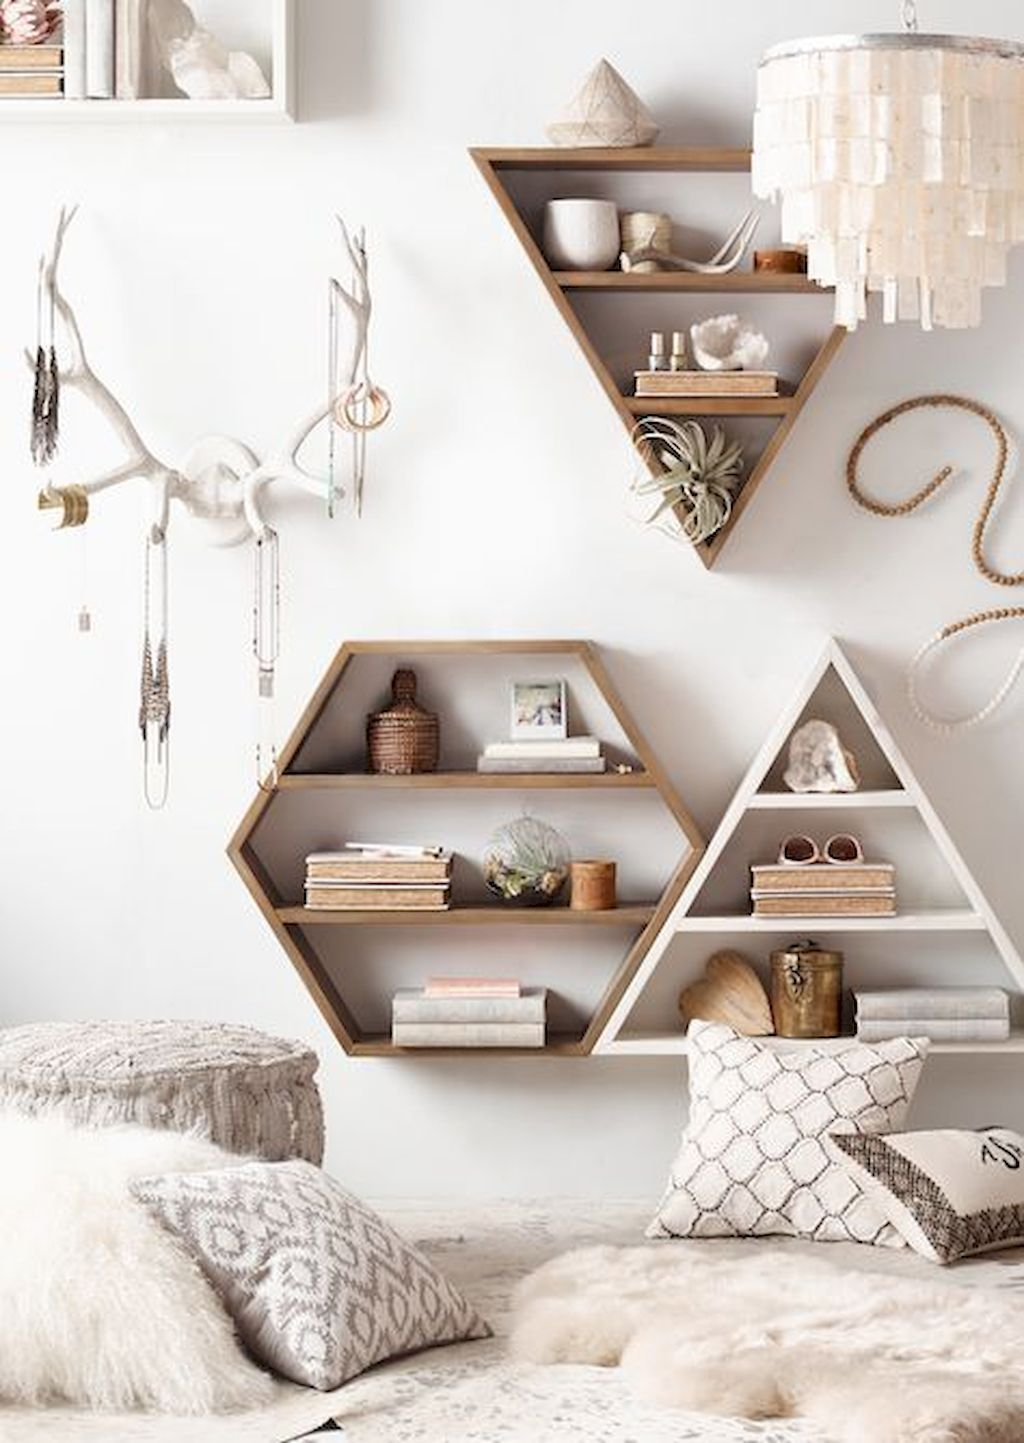 Cool 80 Cute Diy Dorm Room Decorating Ideas On A Budget Https Homespecially